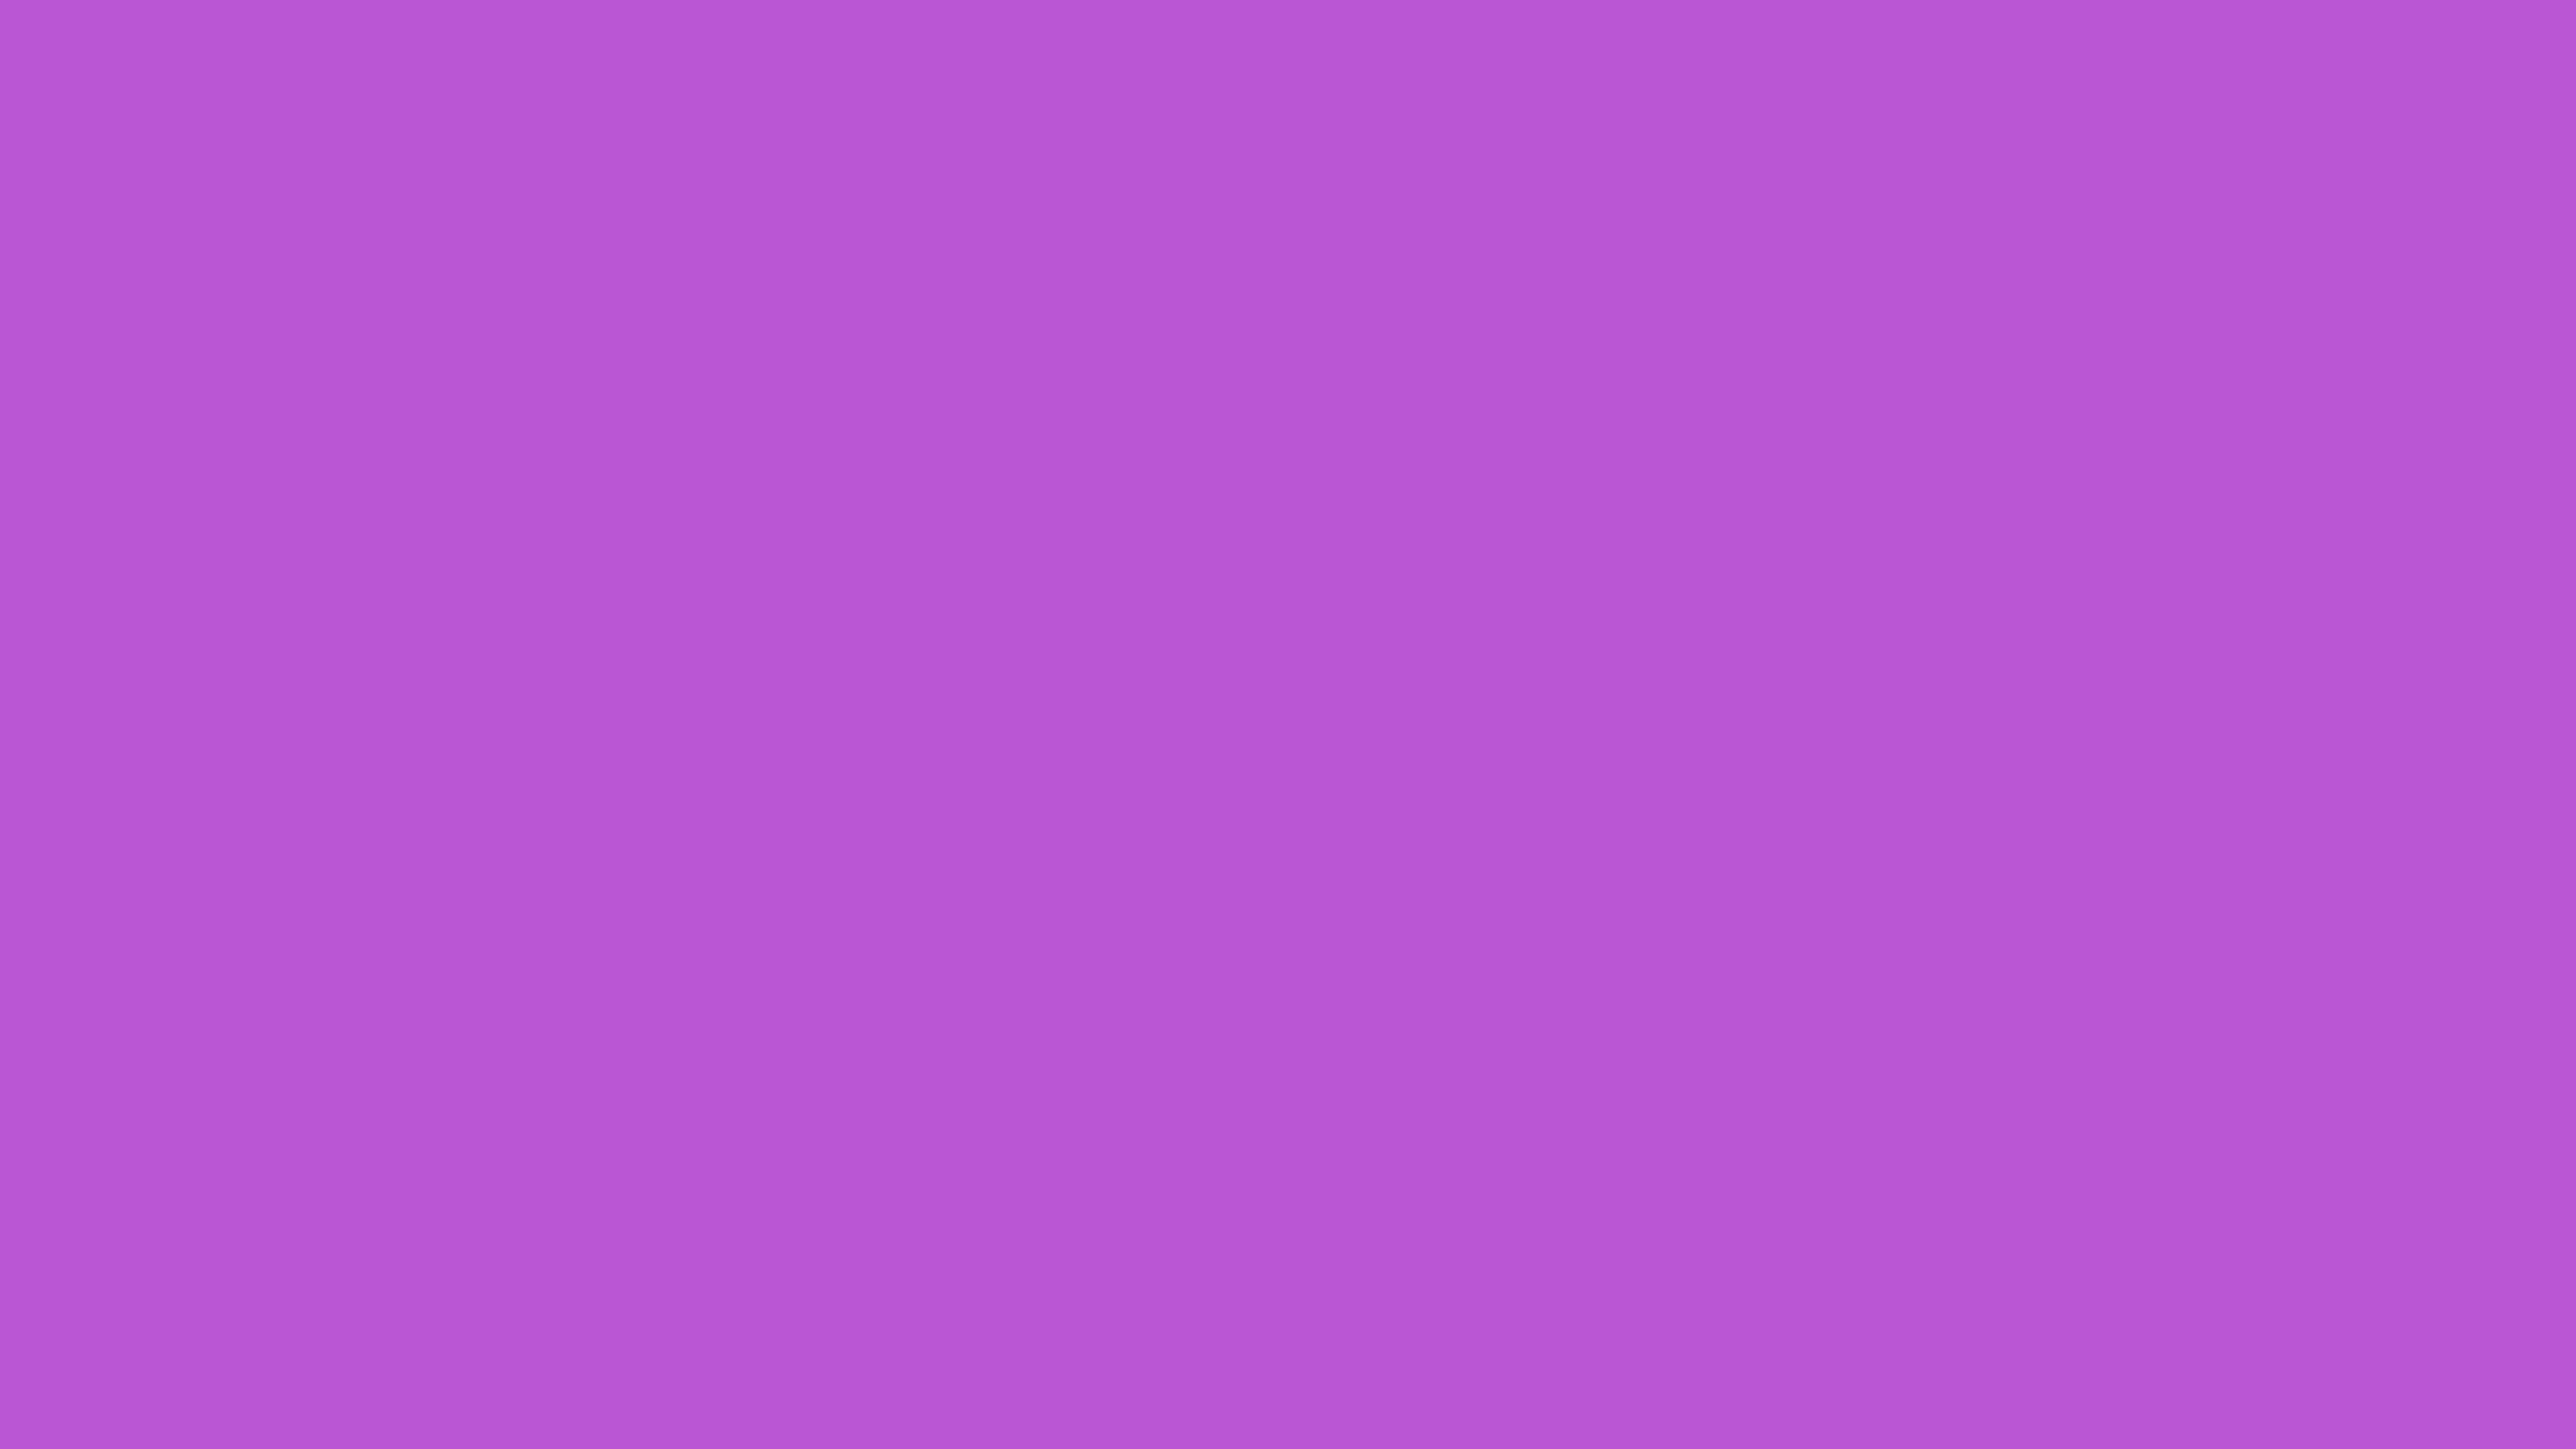 5120x2880 Medium Orchid Solid Color Background